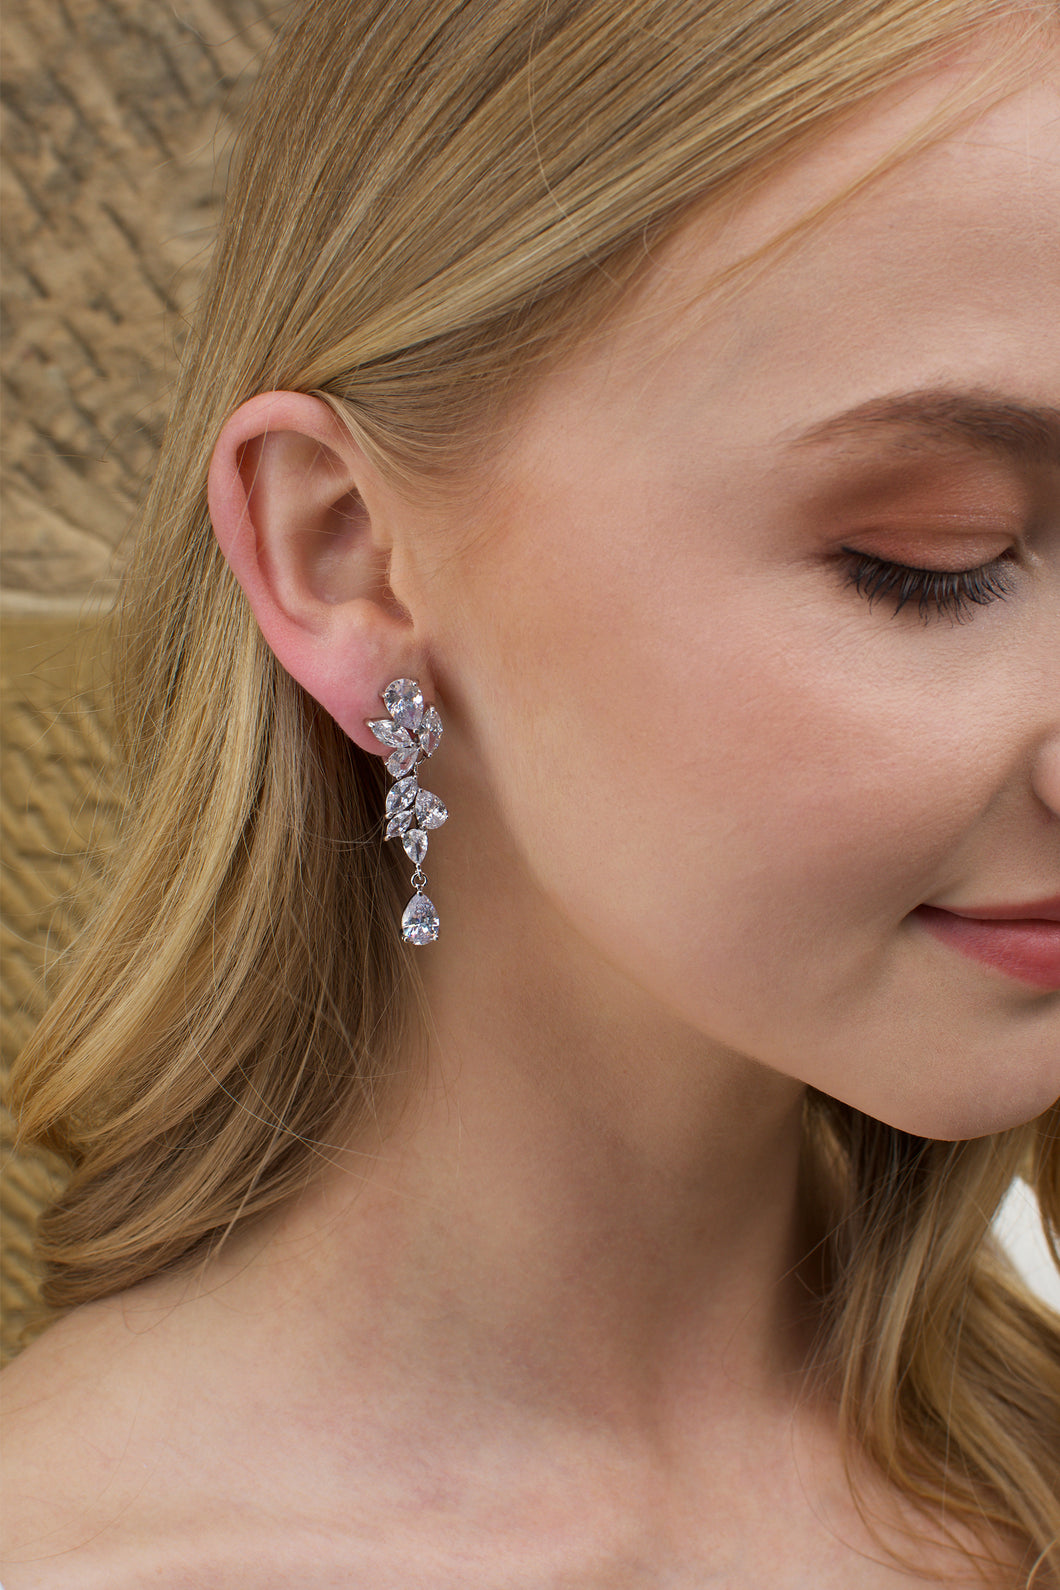 Blonde Model wearing a silver mid length earring with a stone wall backdrop